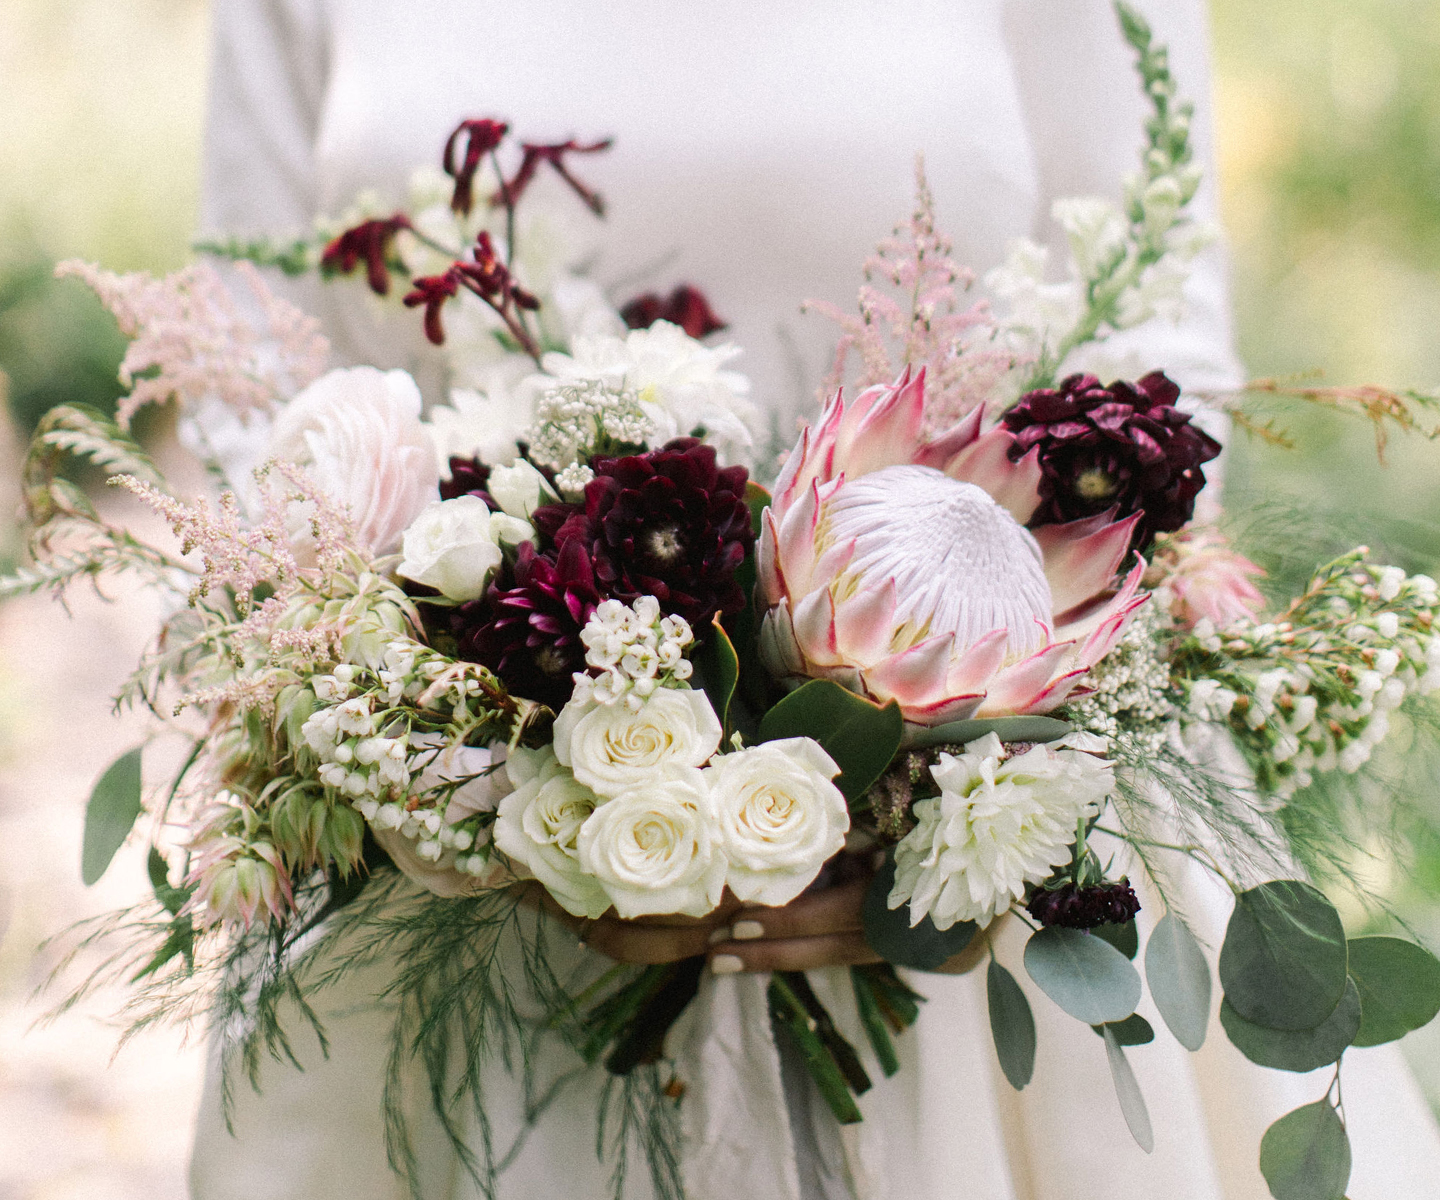 Bridal Bouquet Inspiration for Spring: 12 of the Prettiest Bouquets We've Seen This Spring in Alberta and the Rockies - Pine for Cedar on The Bronte Bride